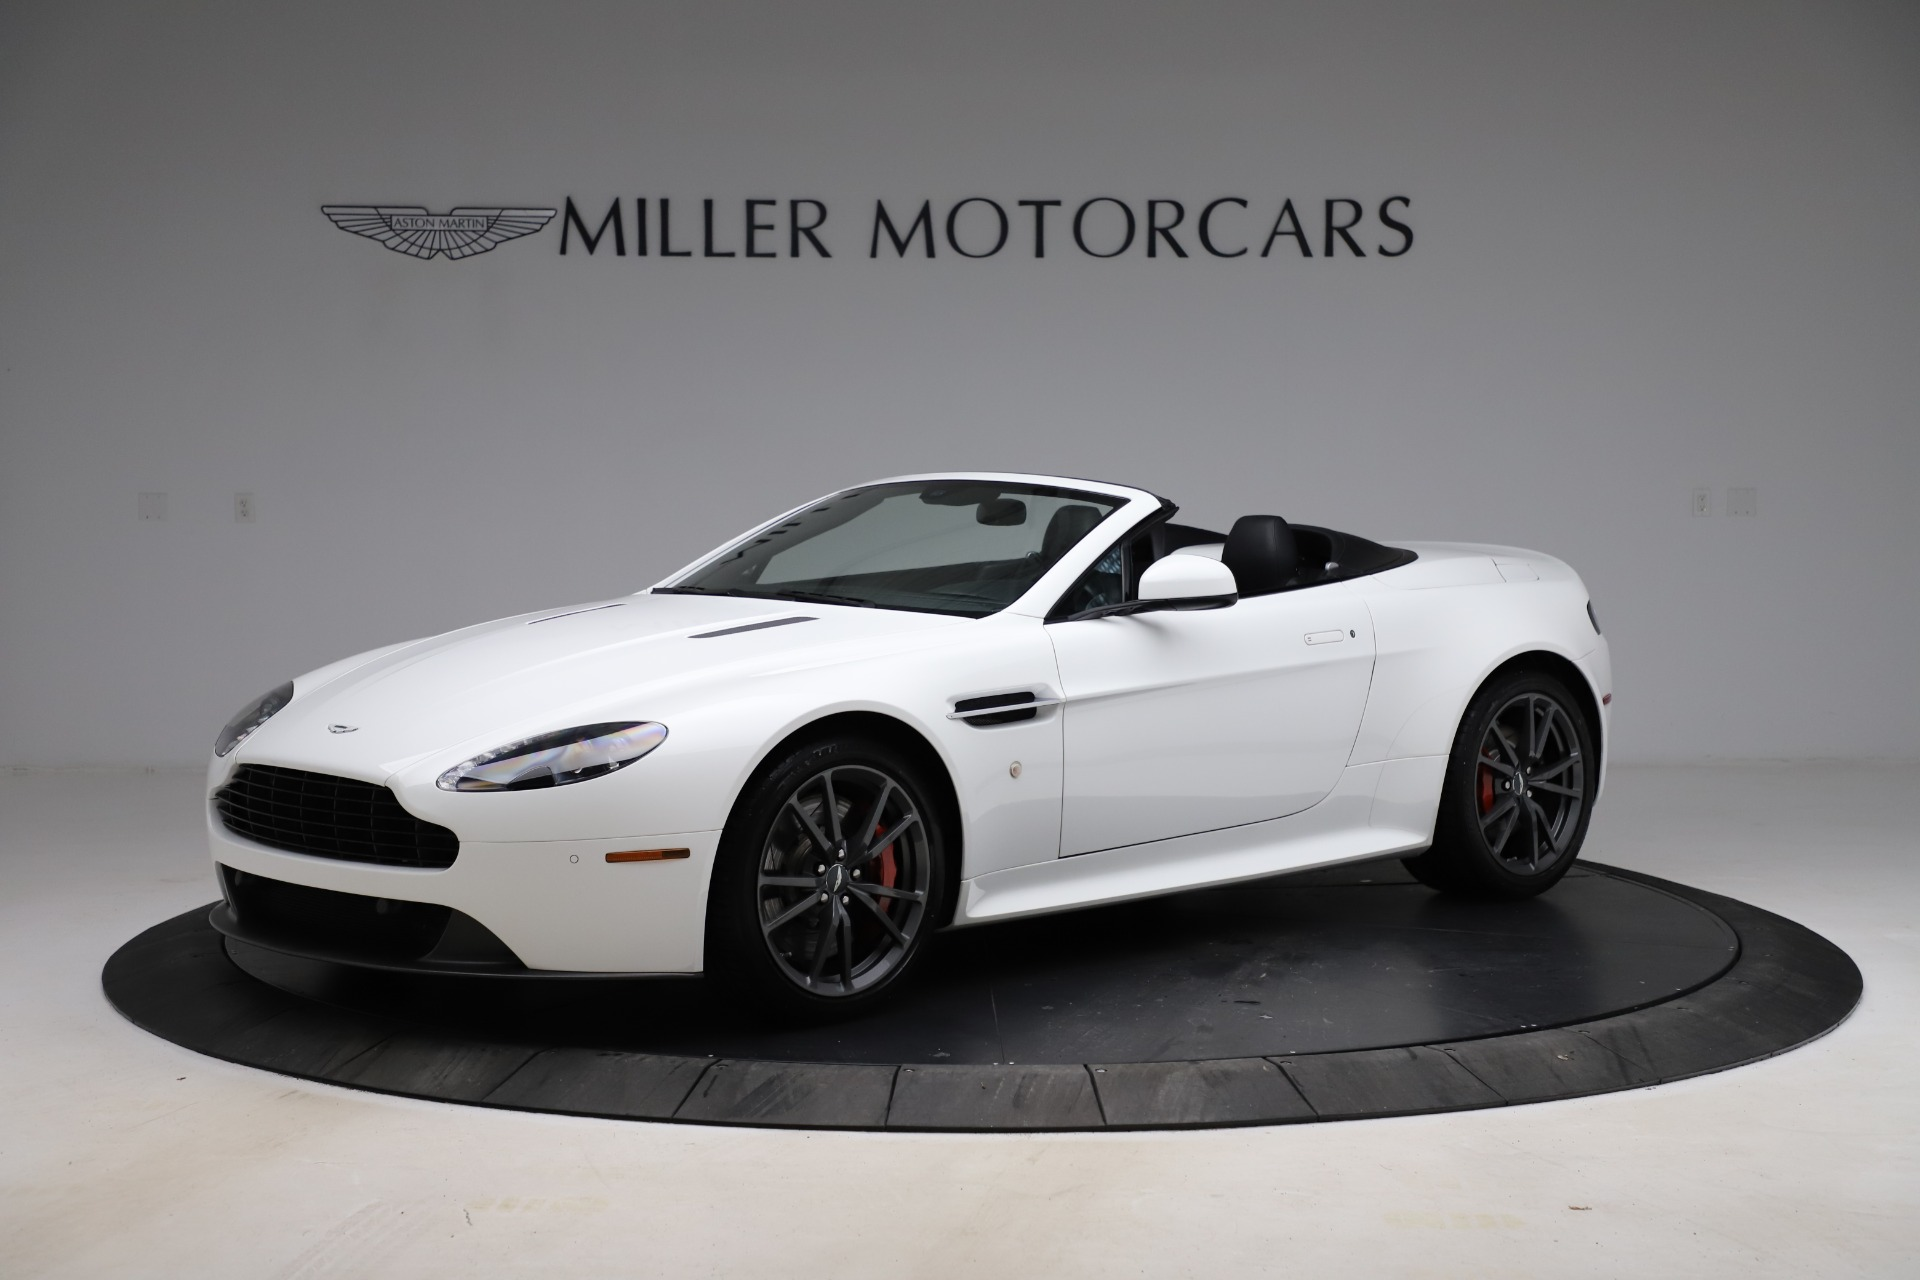 New 2015 Aston Martin Vantage GT GT Roadster For Sale In Westport, CT